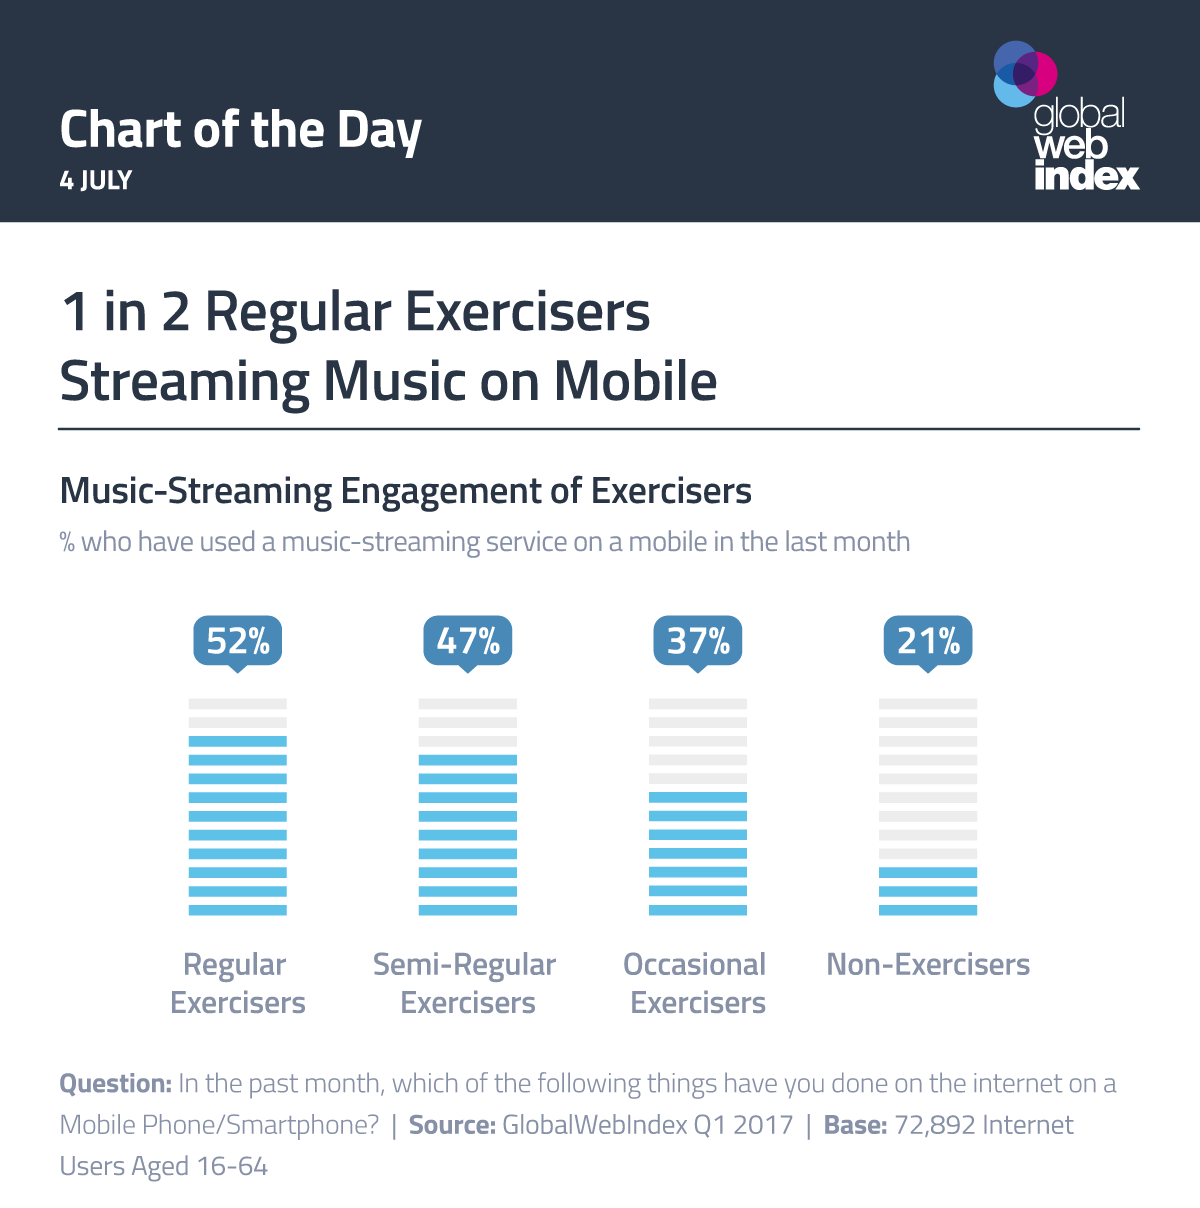 1 in 2 Regular Exercisers Streaming Music on Mobile